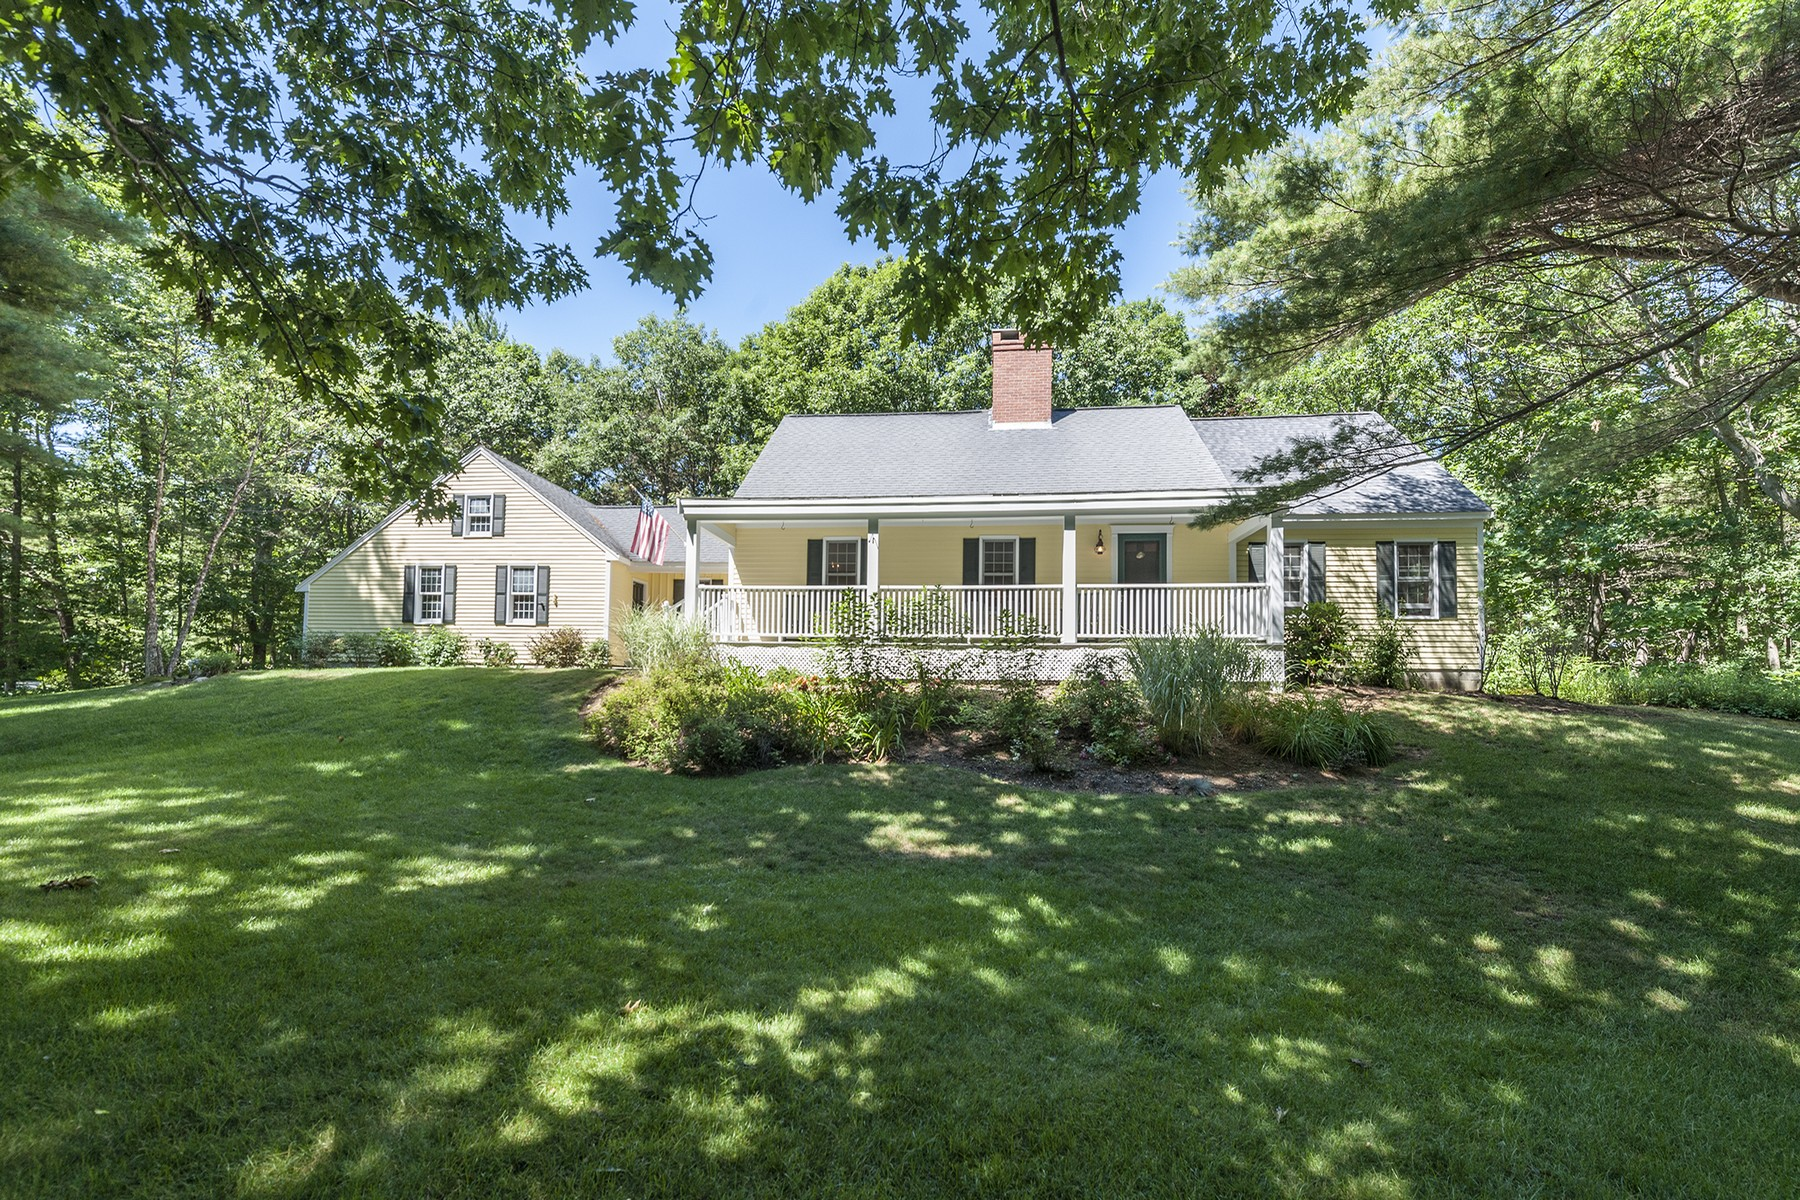 Single Family Home for Sale at Cape Neddick Cape on 1.23 Acres 1 Whippoorwill Ridge Road York, Maine, 03902 United States